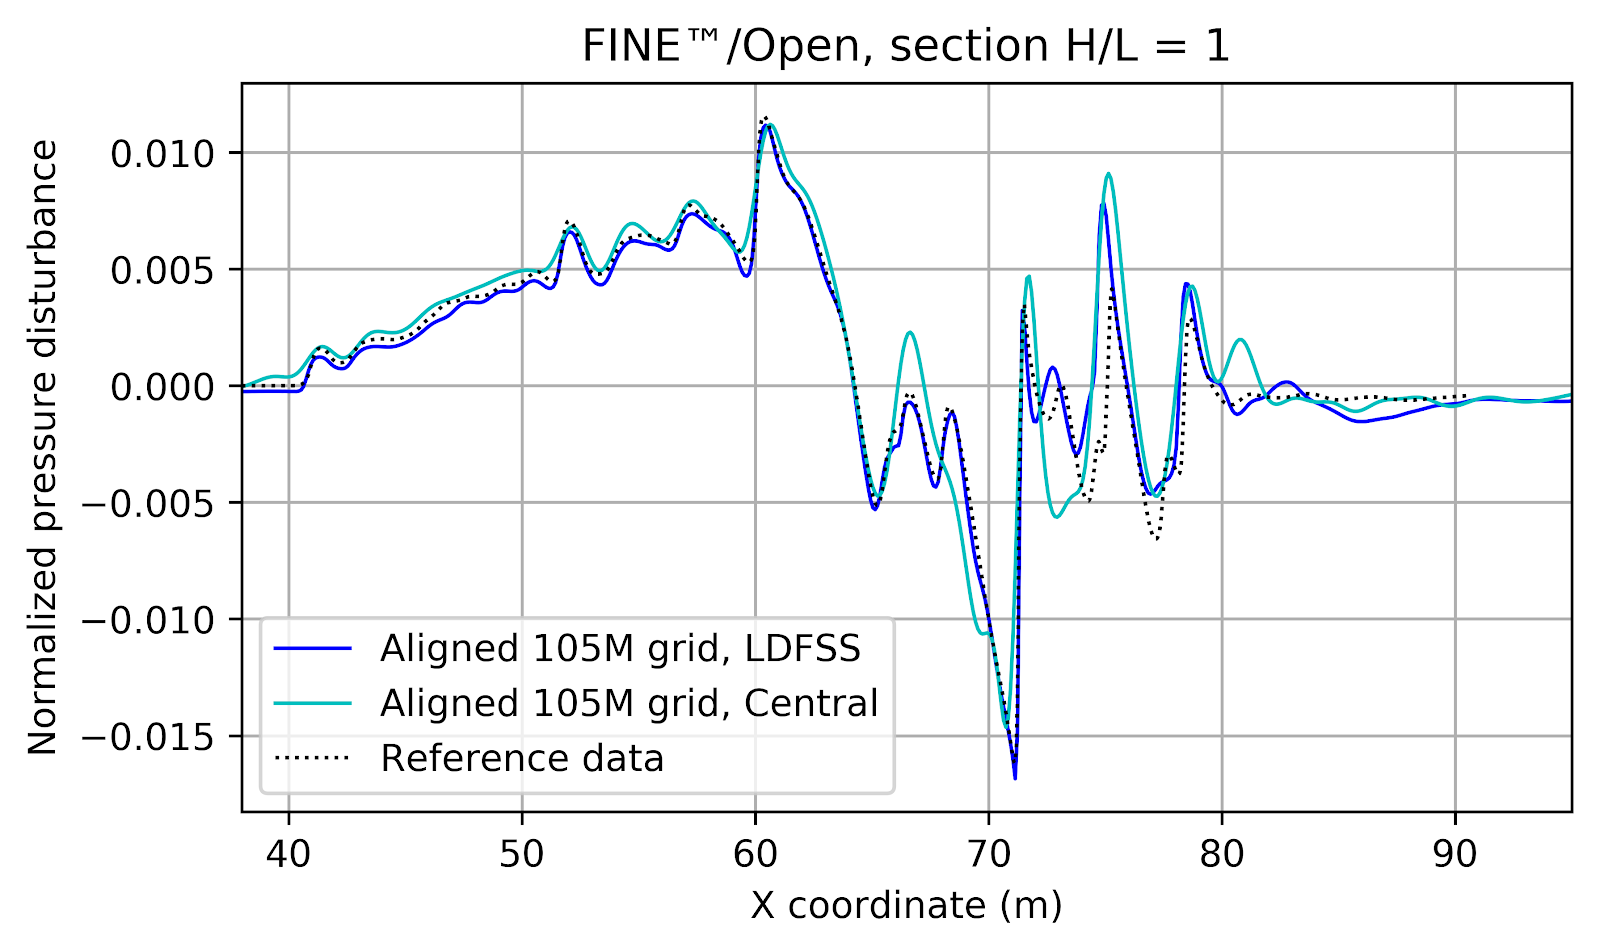 Figure 11: Comparison of normalized pressure disturbance profile between LDFSS and central scheme with scalar dissipation using the 105M aligned mesh. The location corresponds to 1 length below the airplane